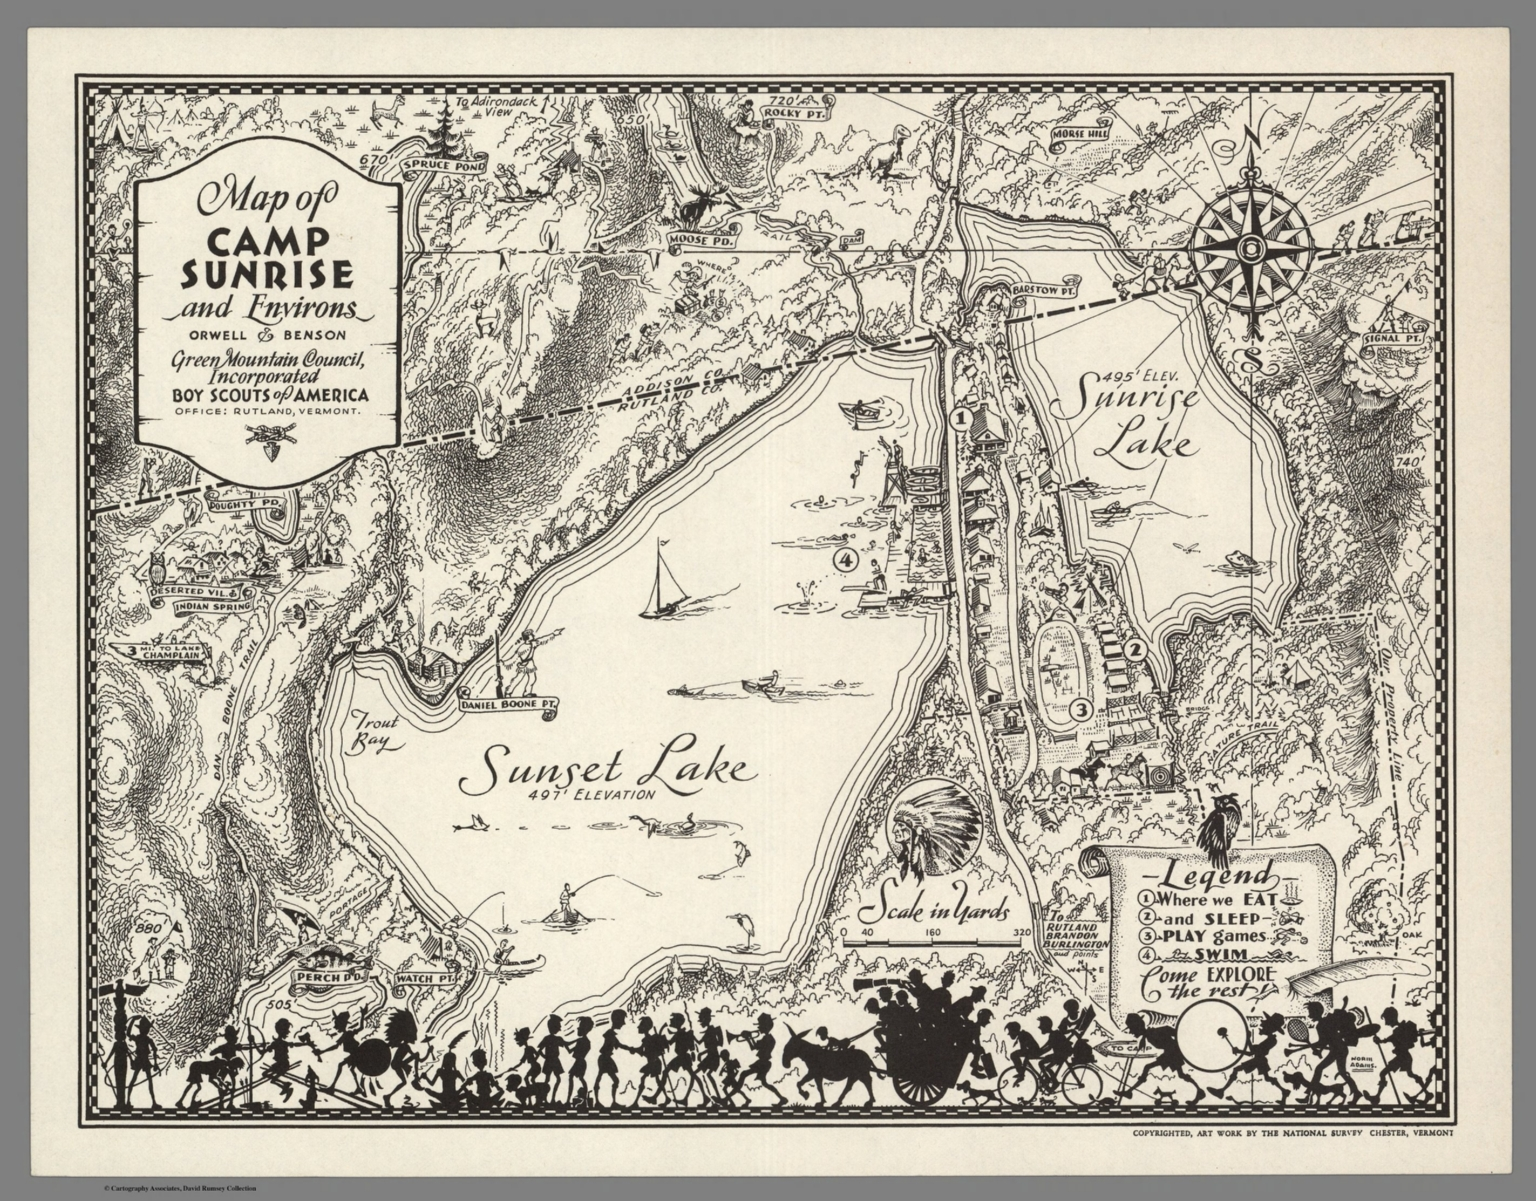 Map Of America Vermont.Map Of Camp Sunrise And Environs Vermont Boy Scouts Of America